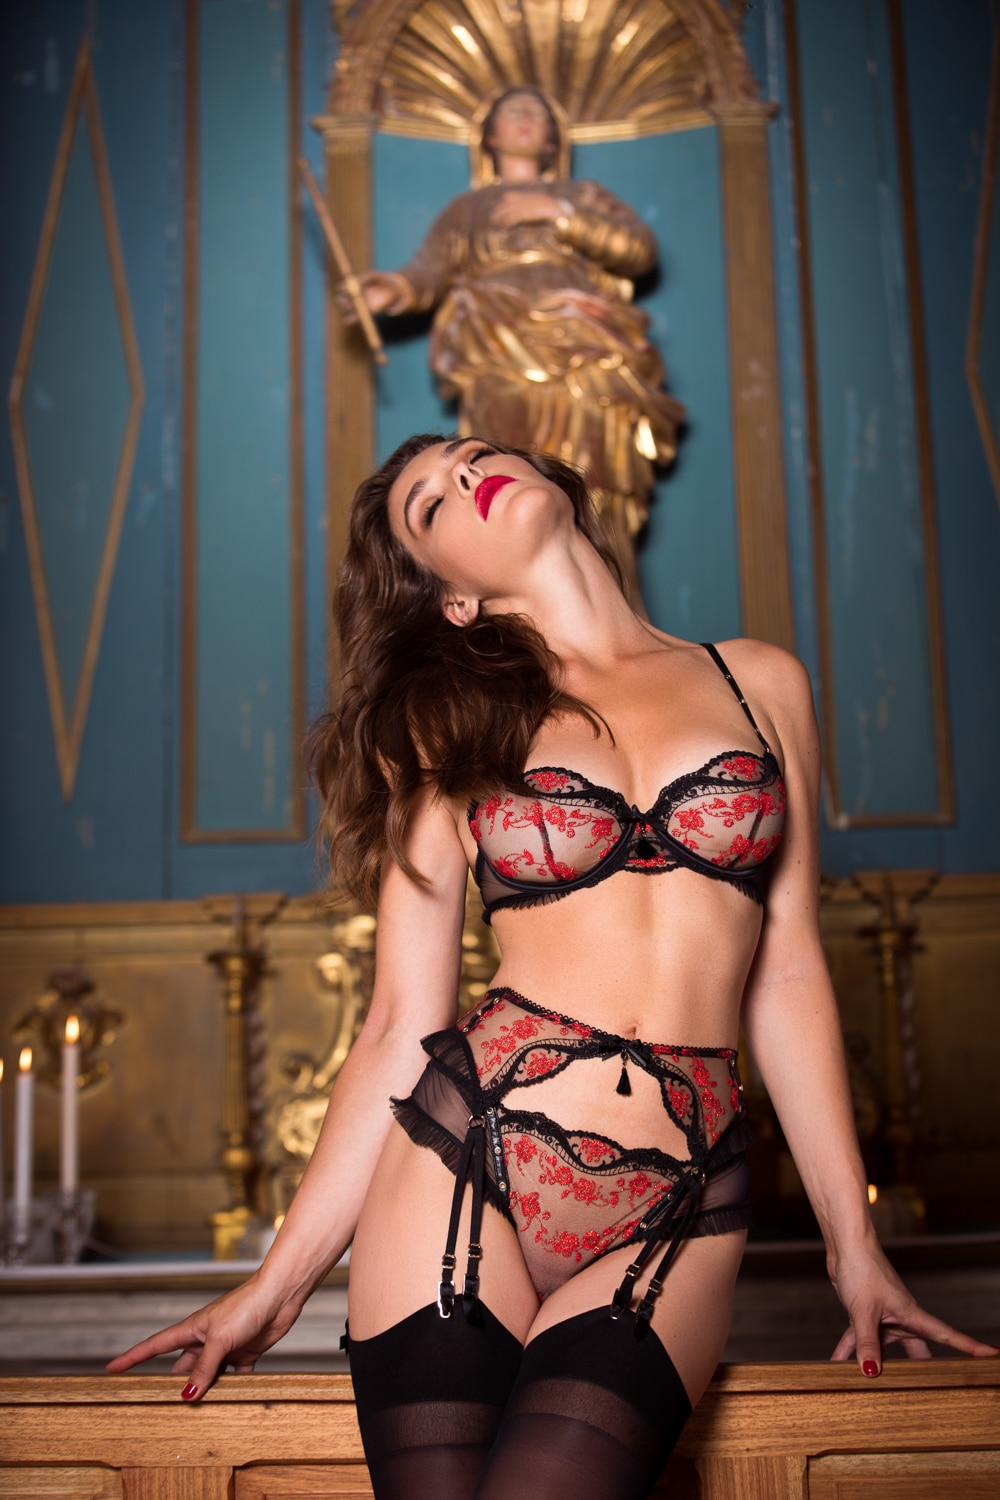 Honey-Birdette-Indecent-Manor-Campaign-10.jpg